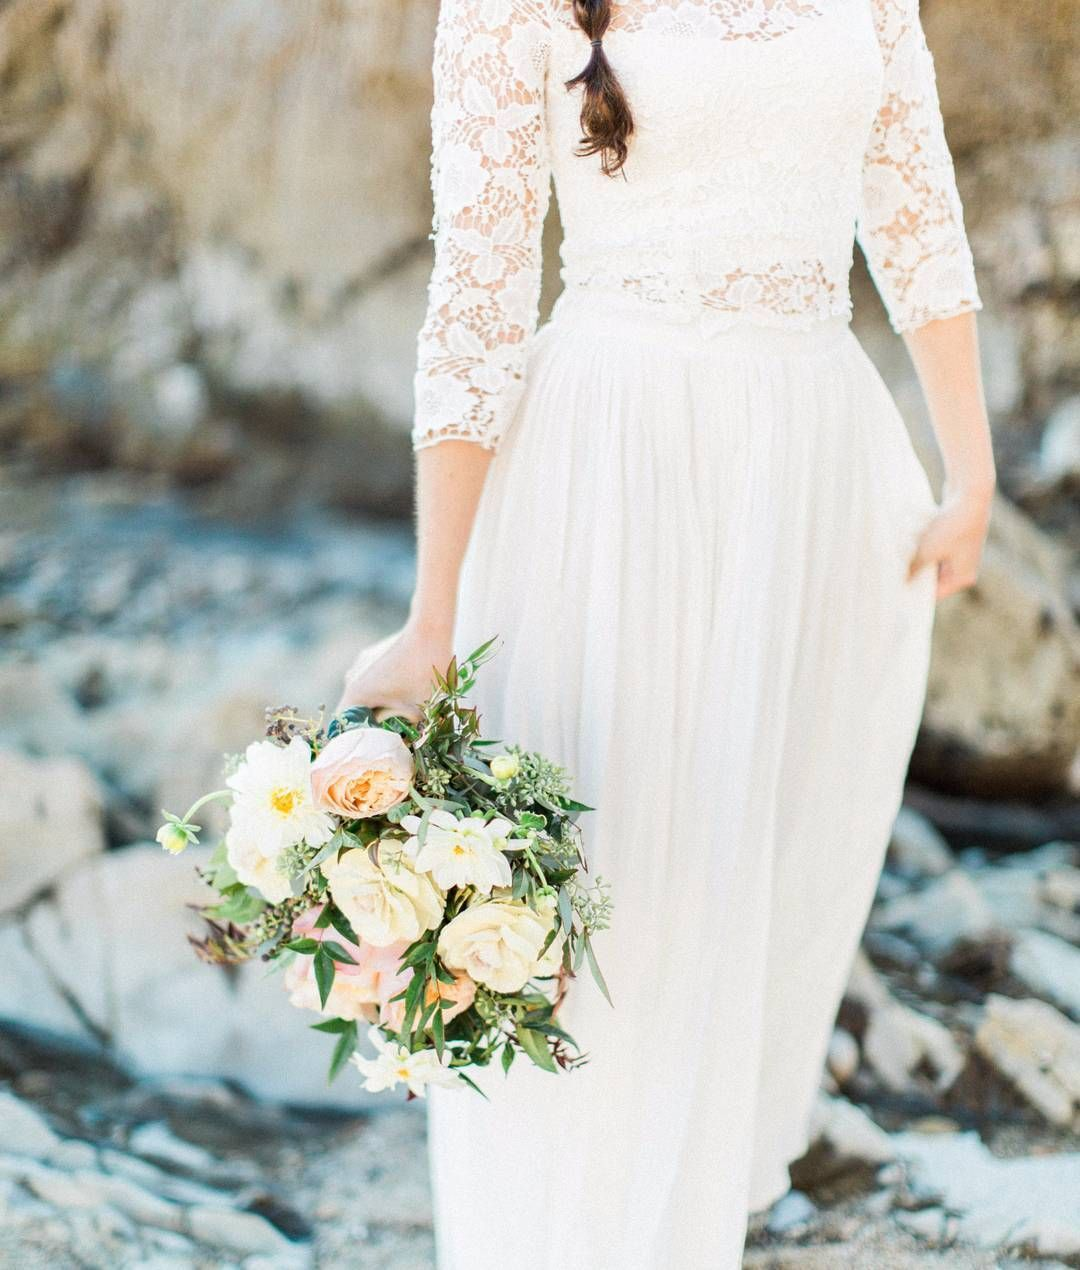 This ethical wedding dress by Puremagnolia is beautiful! #ecowedding ...